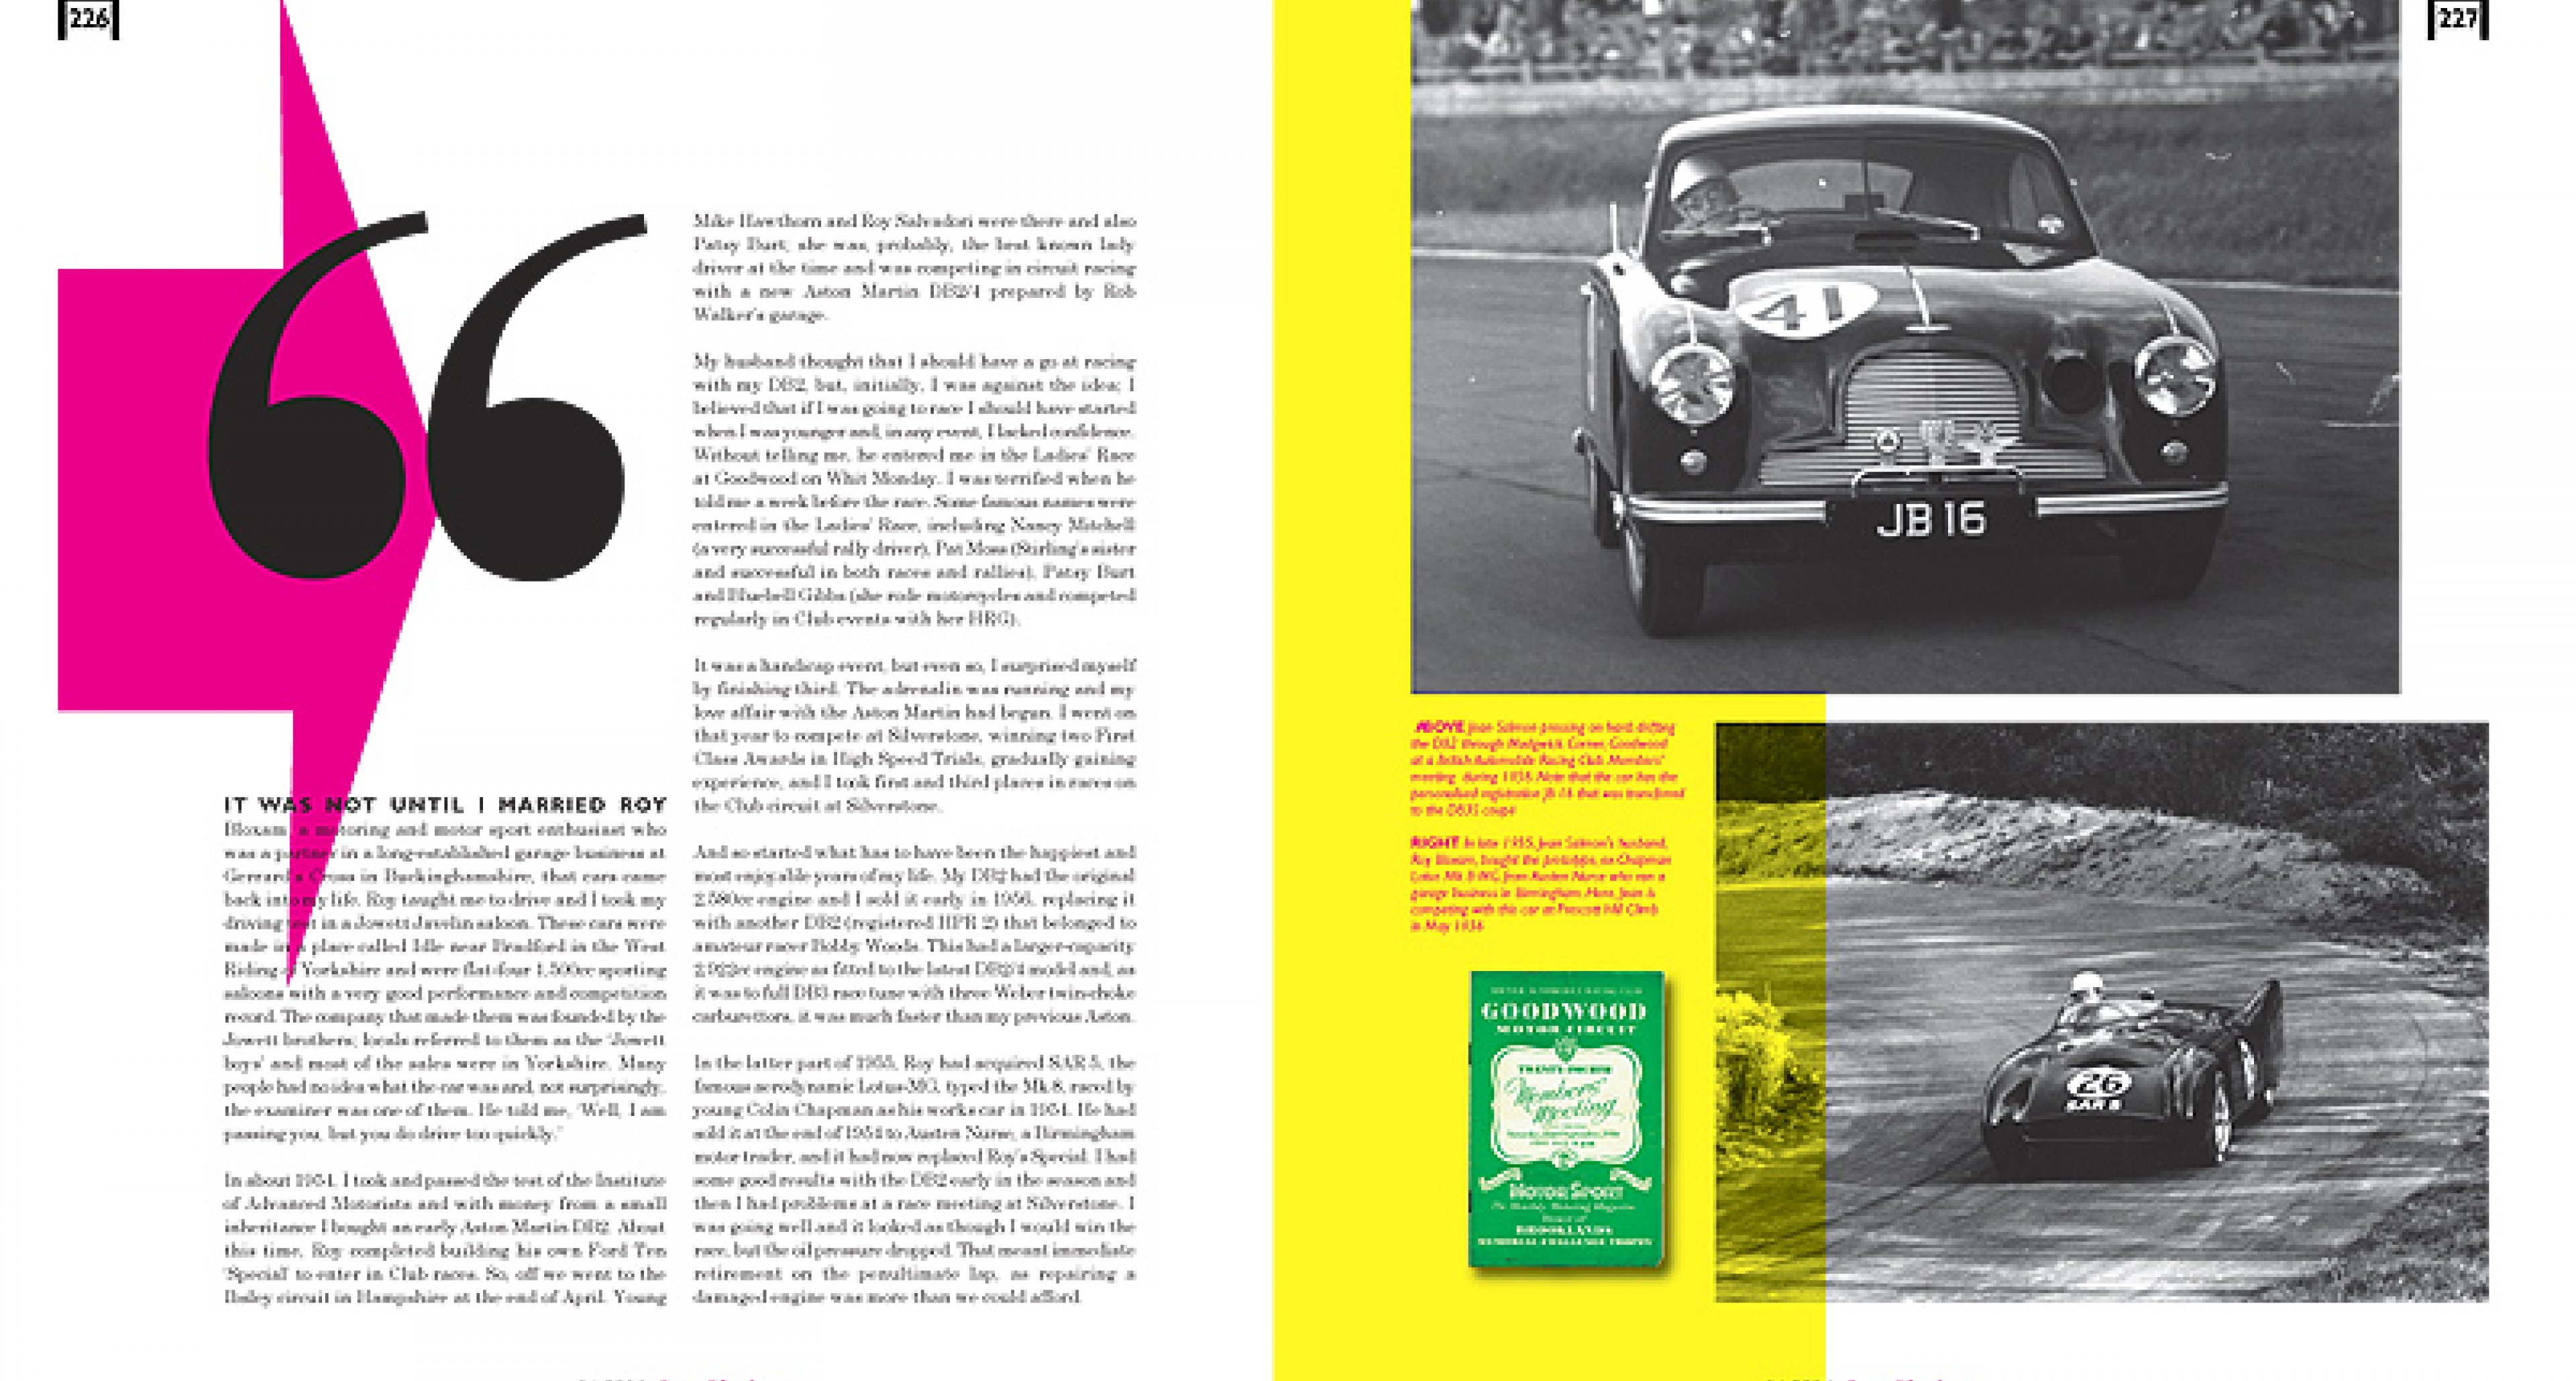 'Racers – Memoirs of the Gentleman Drivers': A new book from Palawan Press